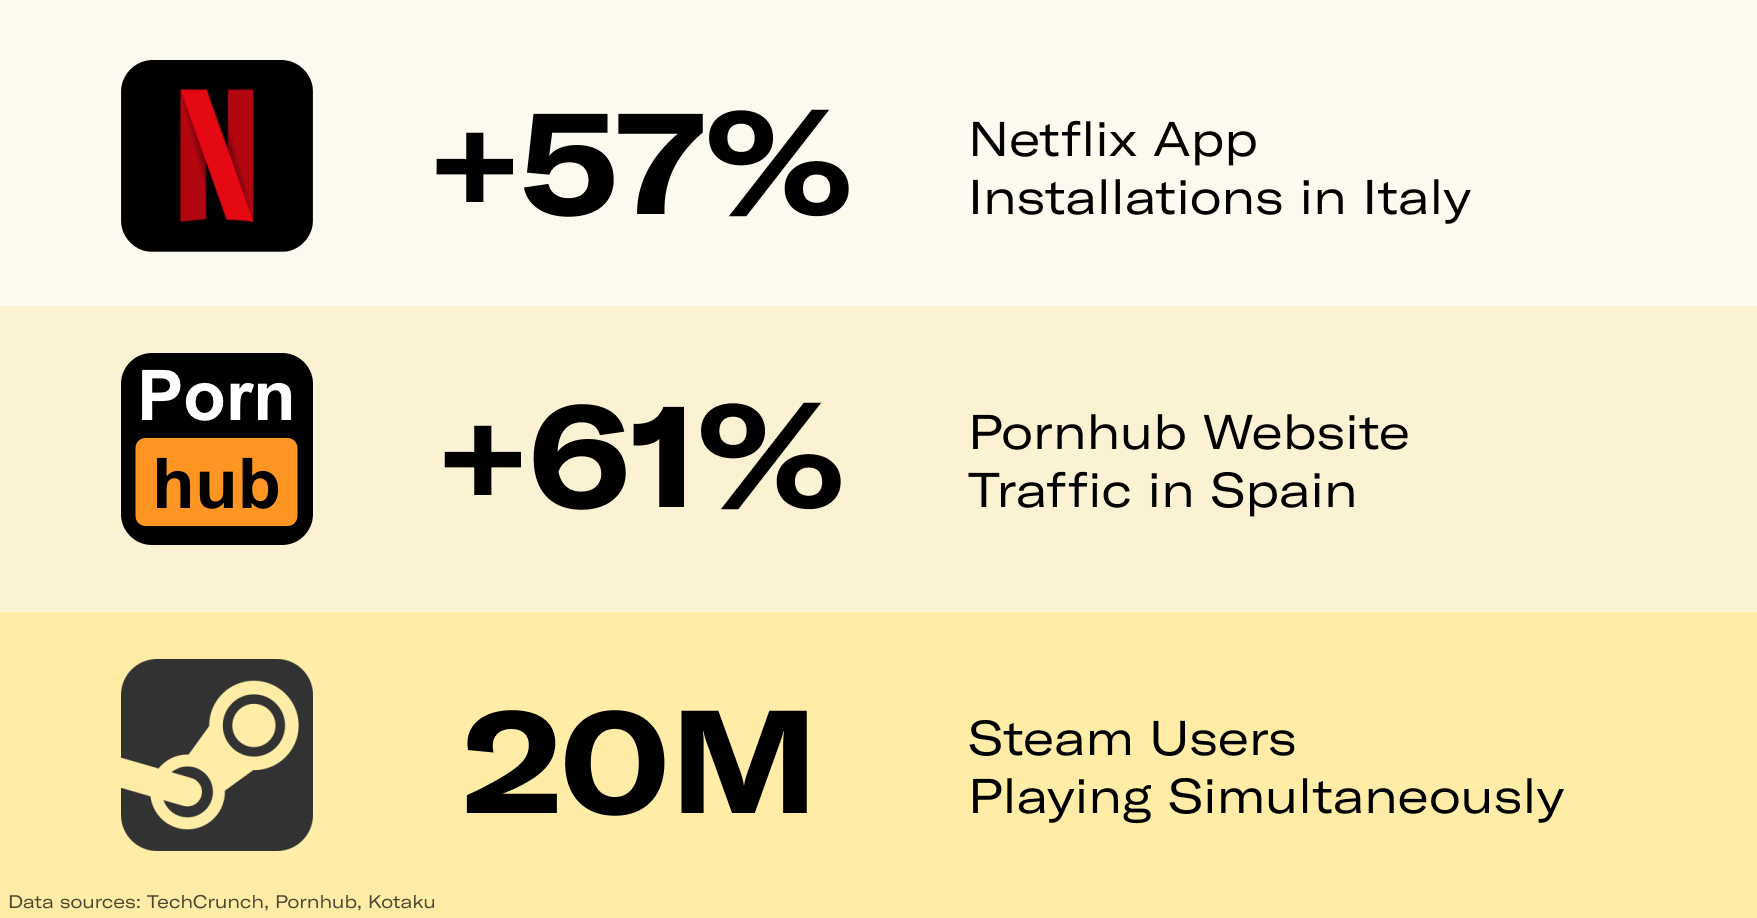 The traffic for online entertainment during the COVID-19